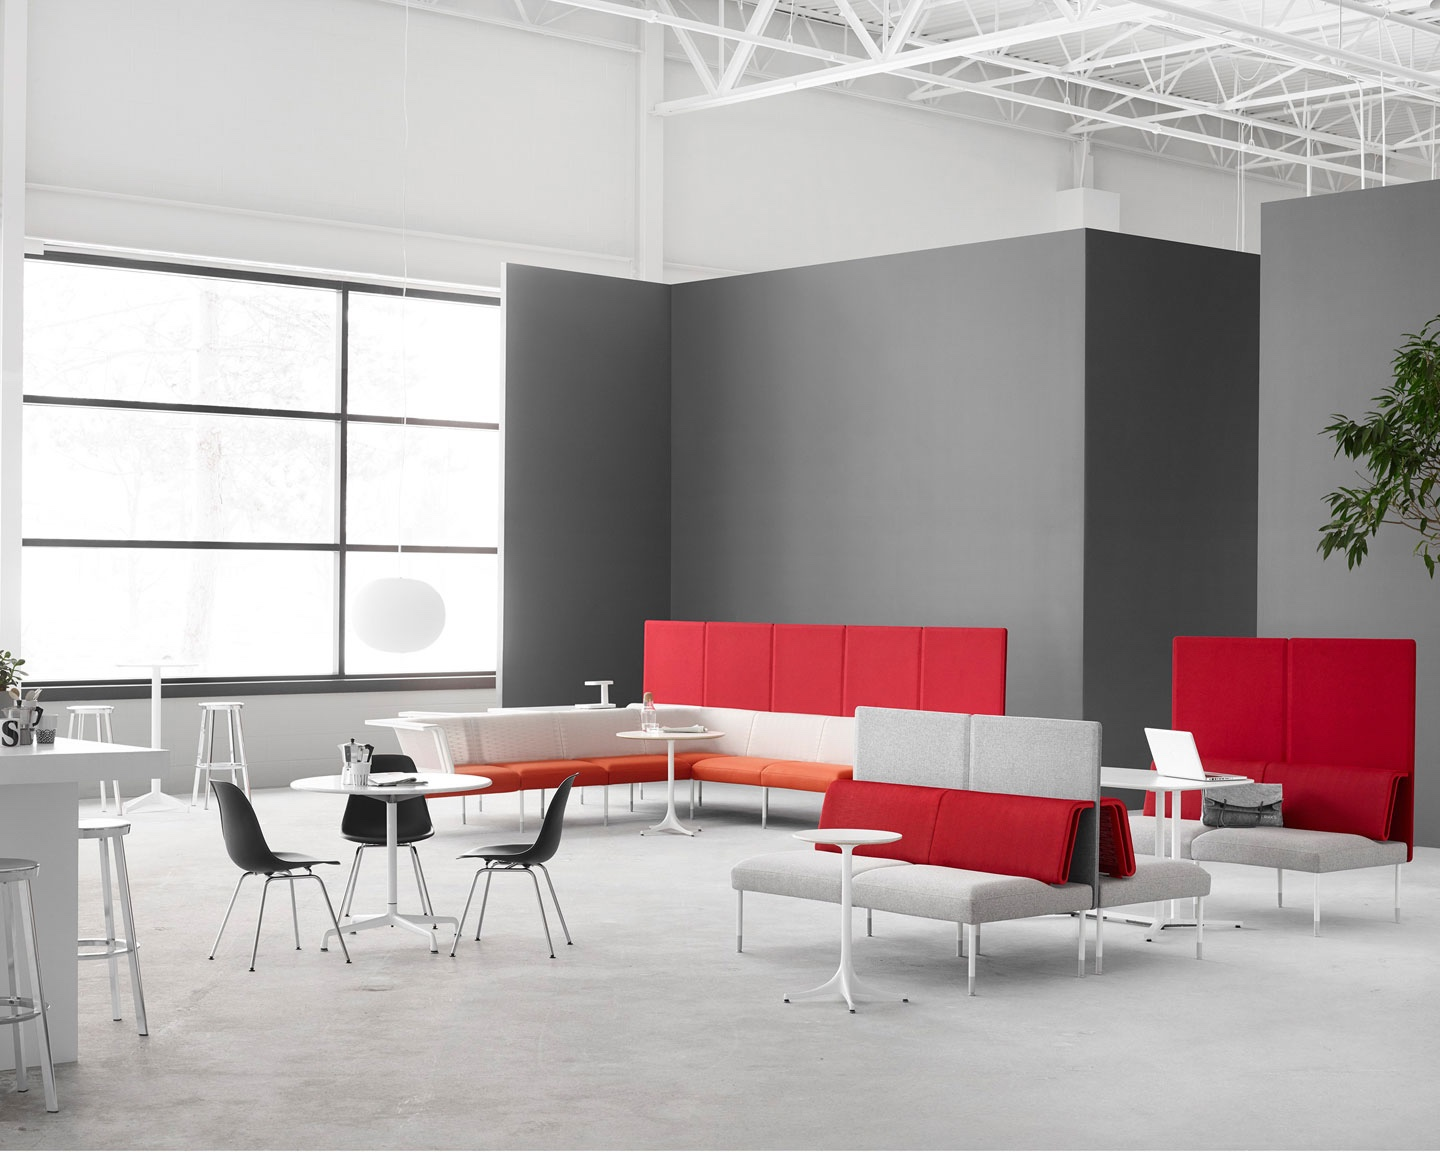 The Plaza concept by Herman Miller offers a smart break-out space. Furniture includes Herman Miller's Public Office Landscape and Nelson Pedestal Table. Image © 2016 Herman Miller, Inc.